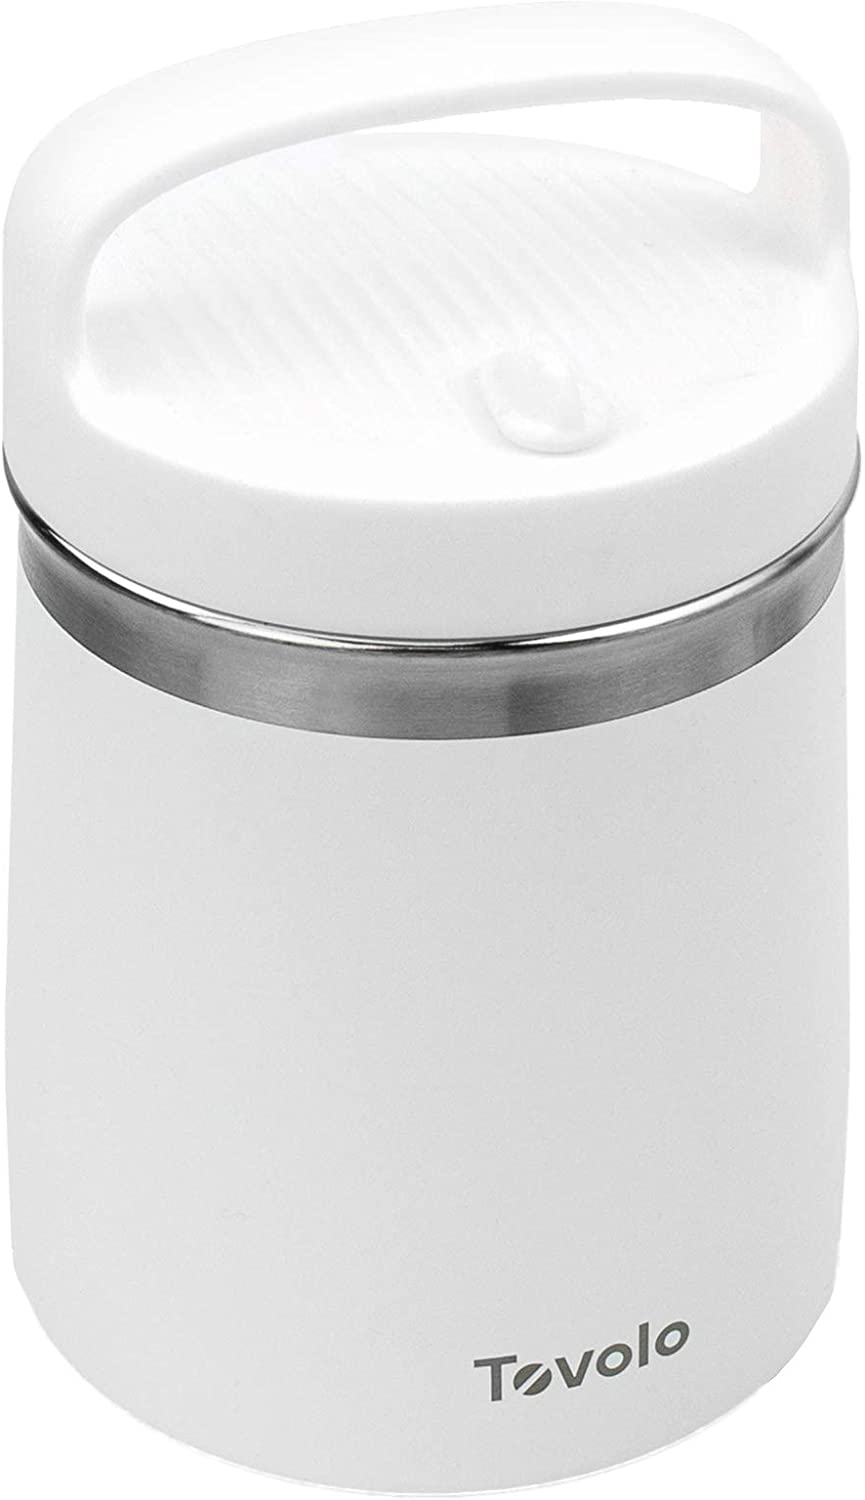 Tovolo 2 Quart Stainless Steel Traveler, Double-Wall Vacuum-Insulated Food Container, 2 Qt. Food Storage & Ice Cream Container, Easy-Carry Handle, Travel Mug for Hot Food & Cold Ice Cream, White